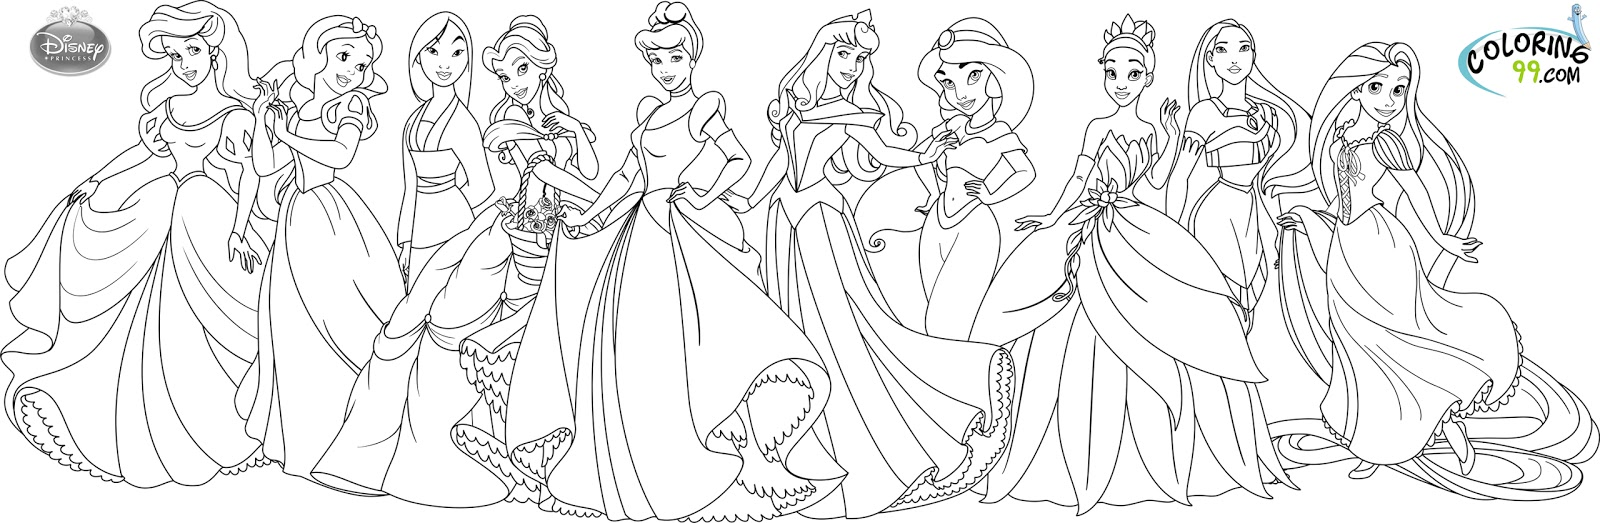 Disney Princess Coloring Pages Team Colors Disney Princesses Coloring Pages